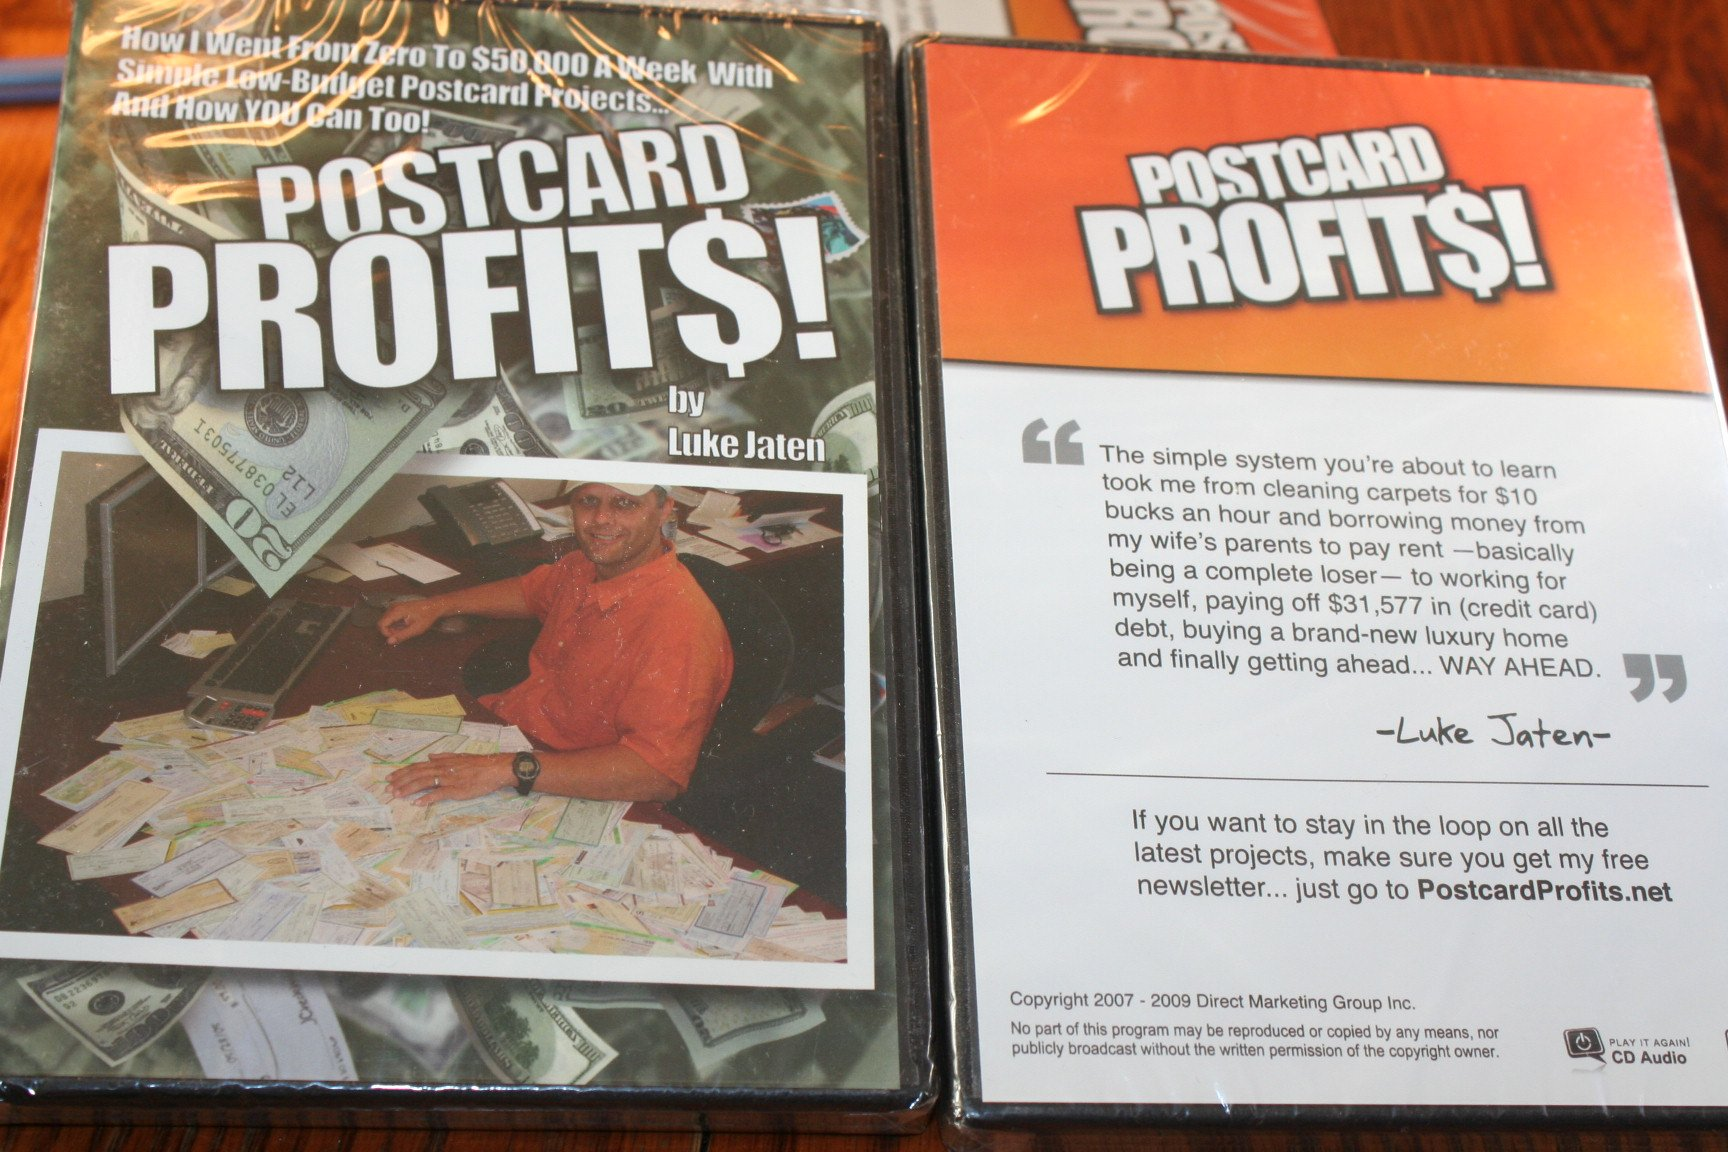 Download Postcard Profits Part Three: The Product (How I Went From Zero to $50,000 a Week With Simple Low-Budget Postcard Projects... And How YOU Can Too!, 3) PDF